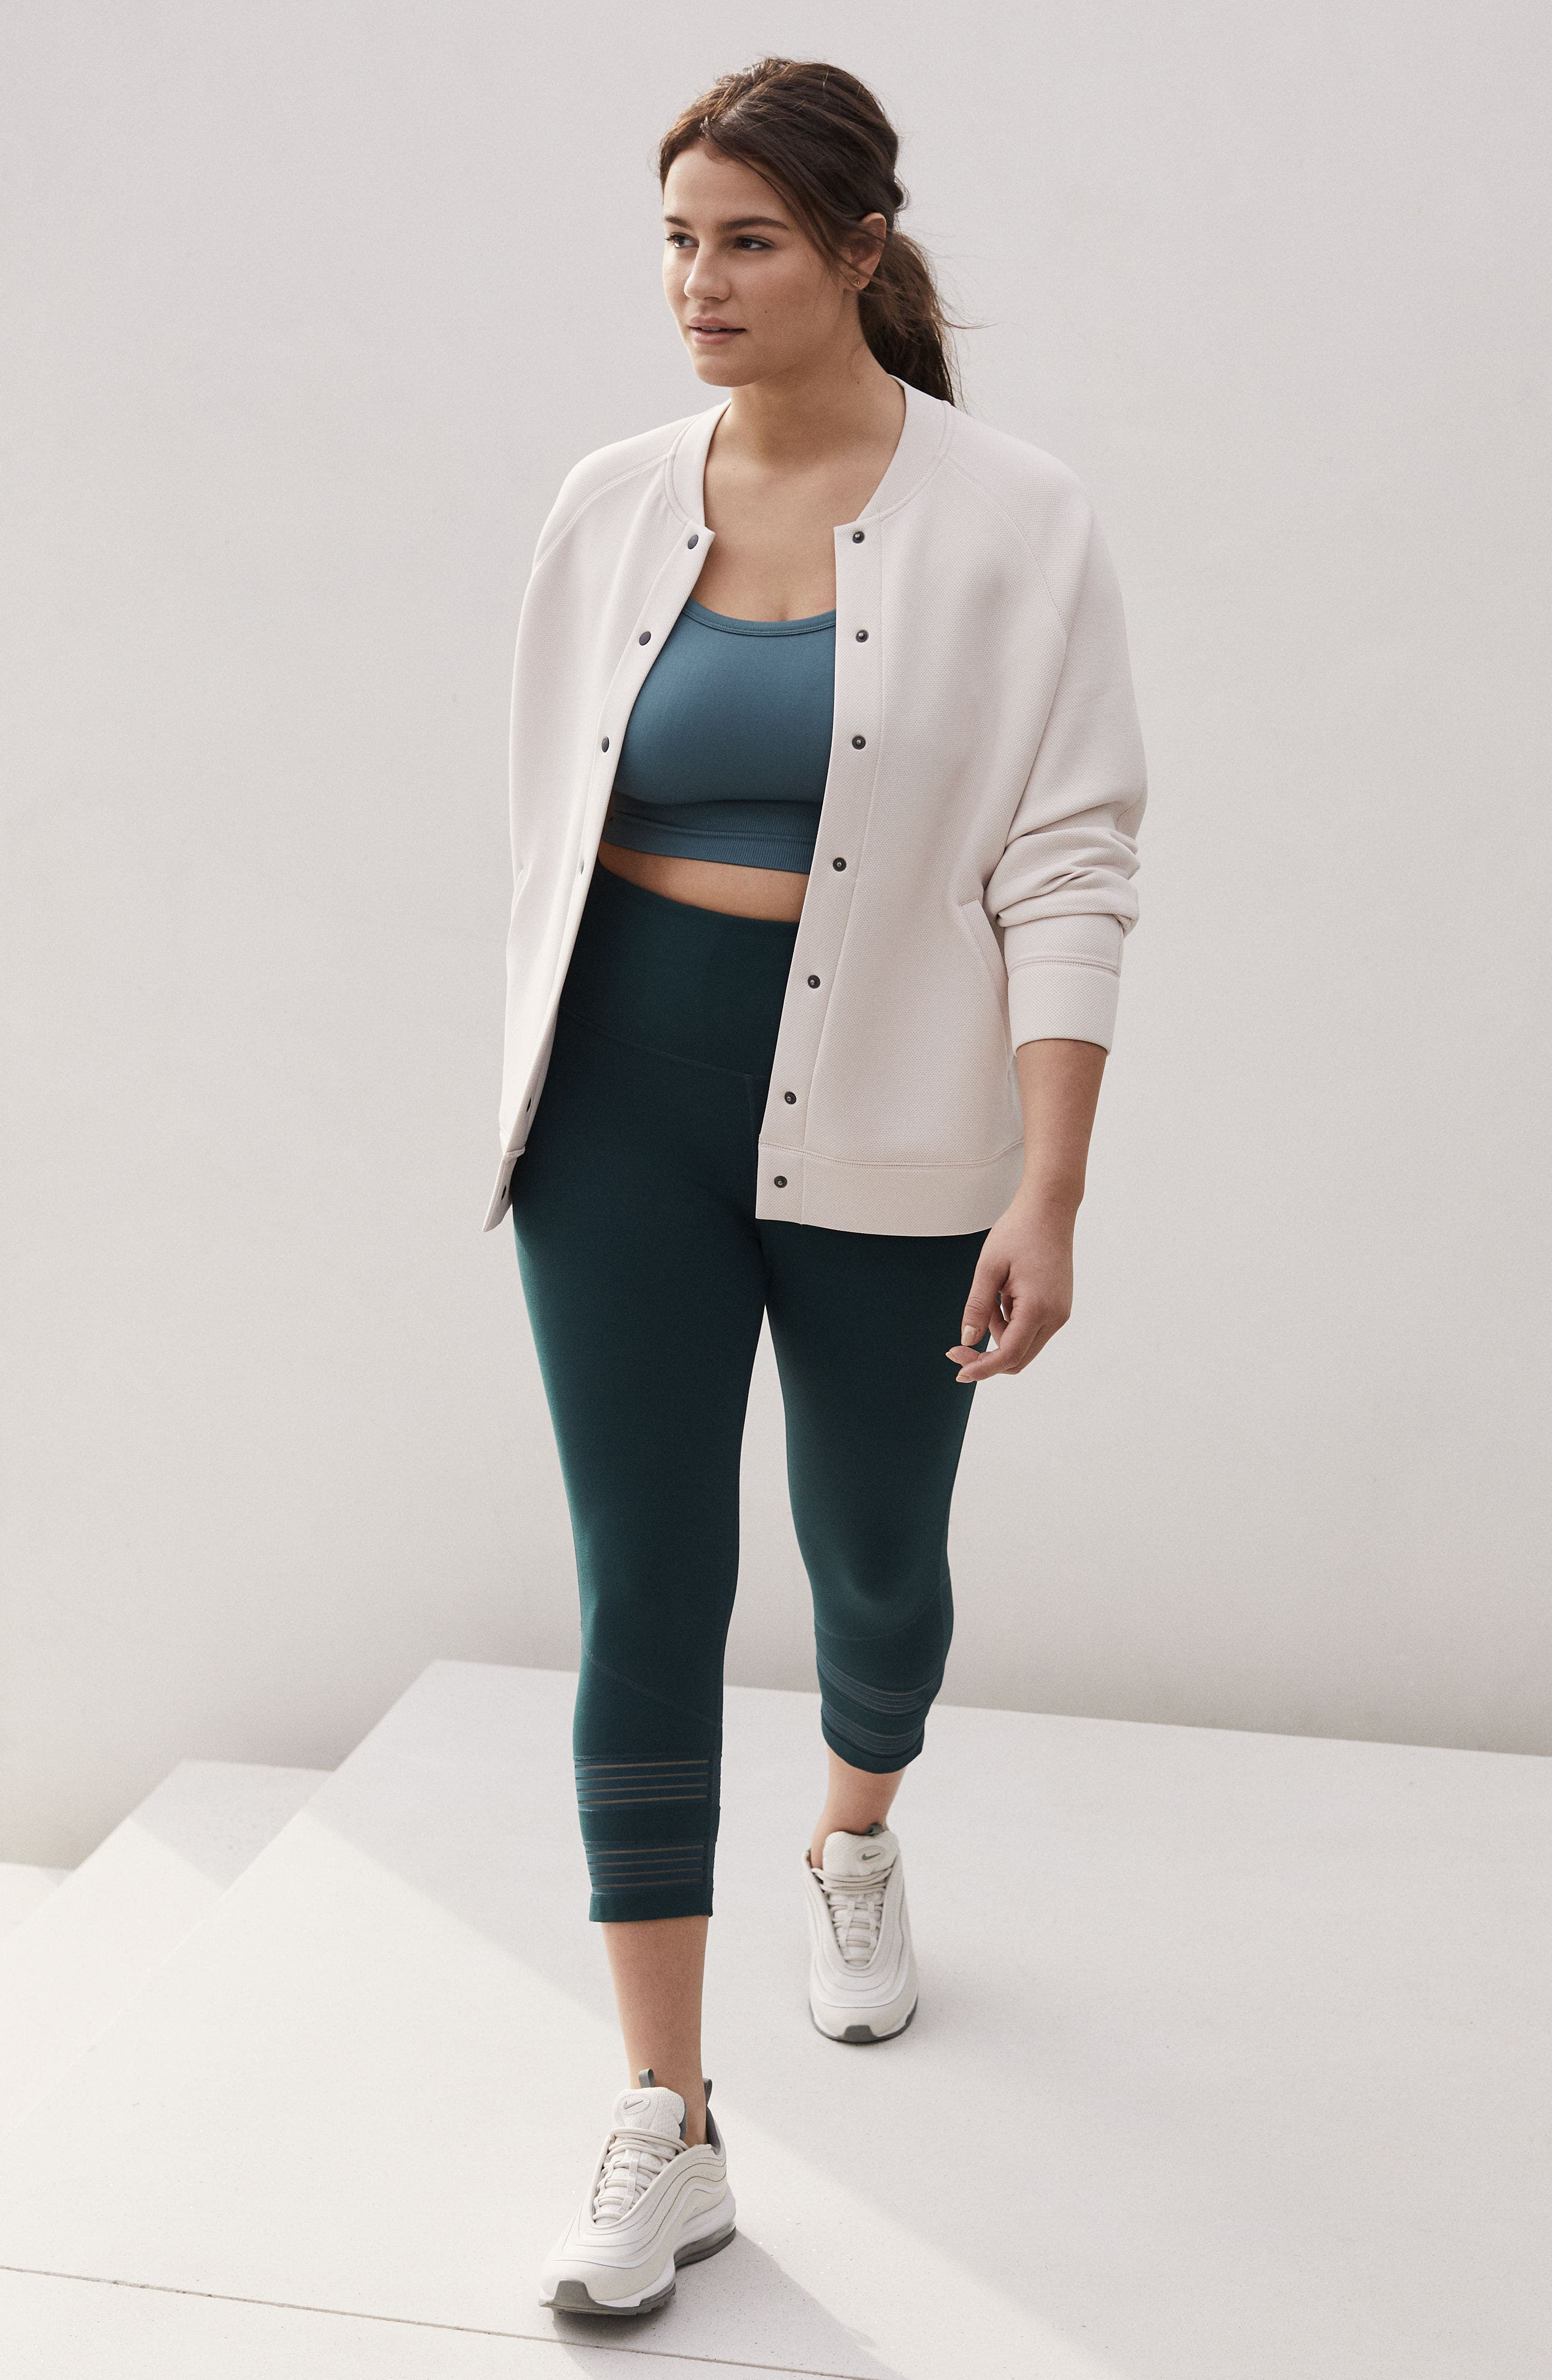 Arise Luxe Bomber Jacket,                             Alternate thumbnail 7, color,